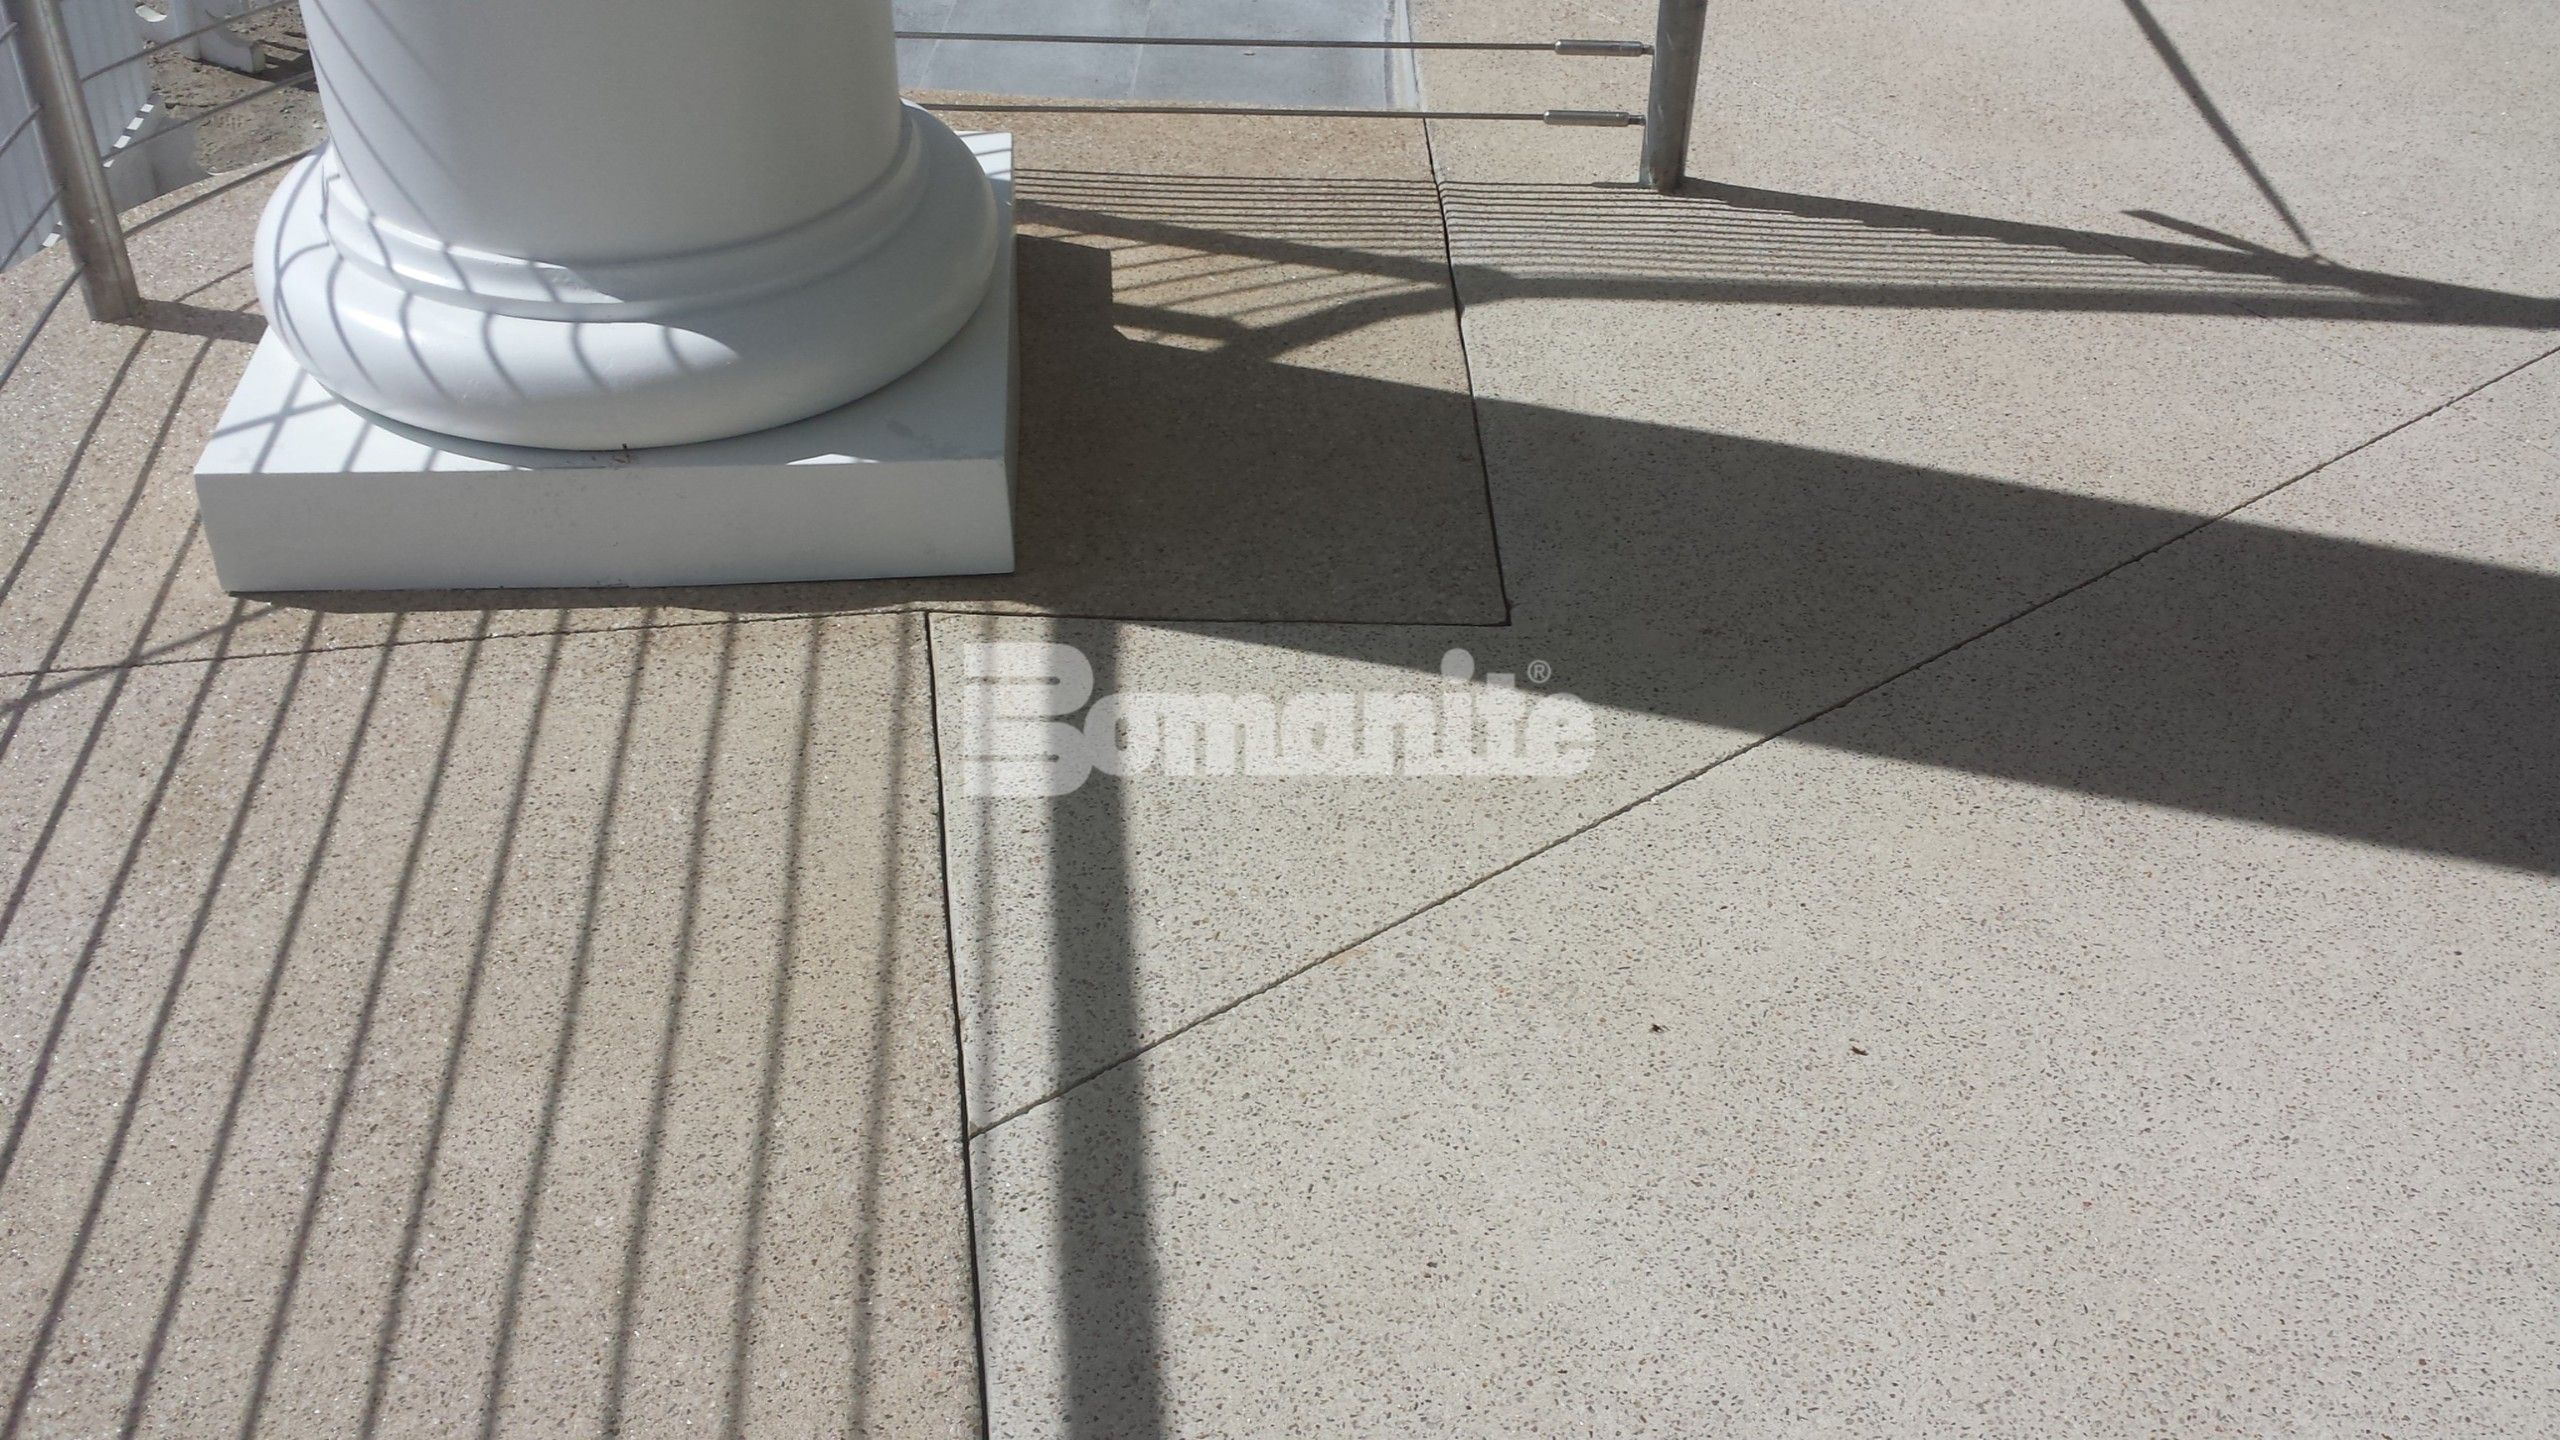 Close up of column and Bomanite Revealed Exposed Aggregate Systems decorative concrete installed at Westchester CC Beach Club by Beyond Concrete of Keyport, NJ.